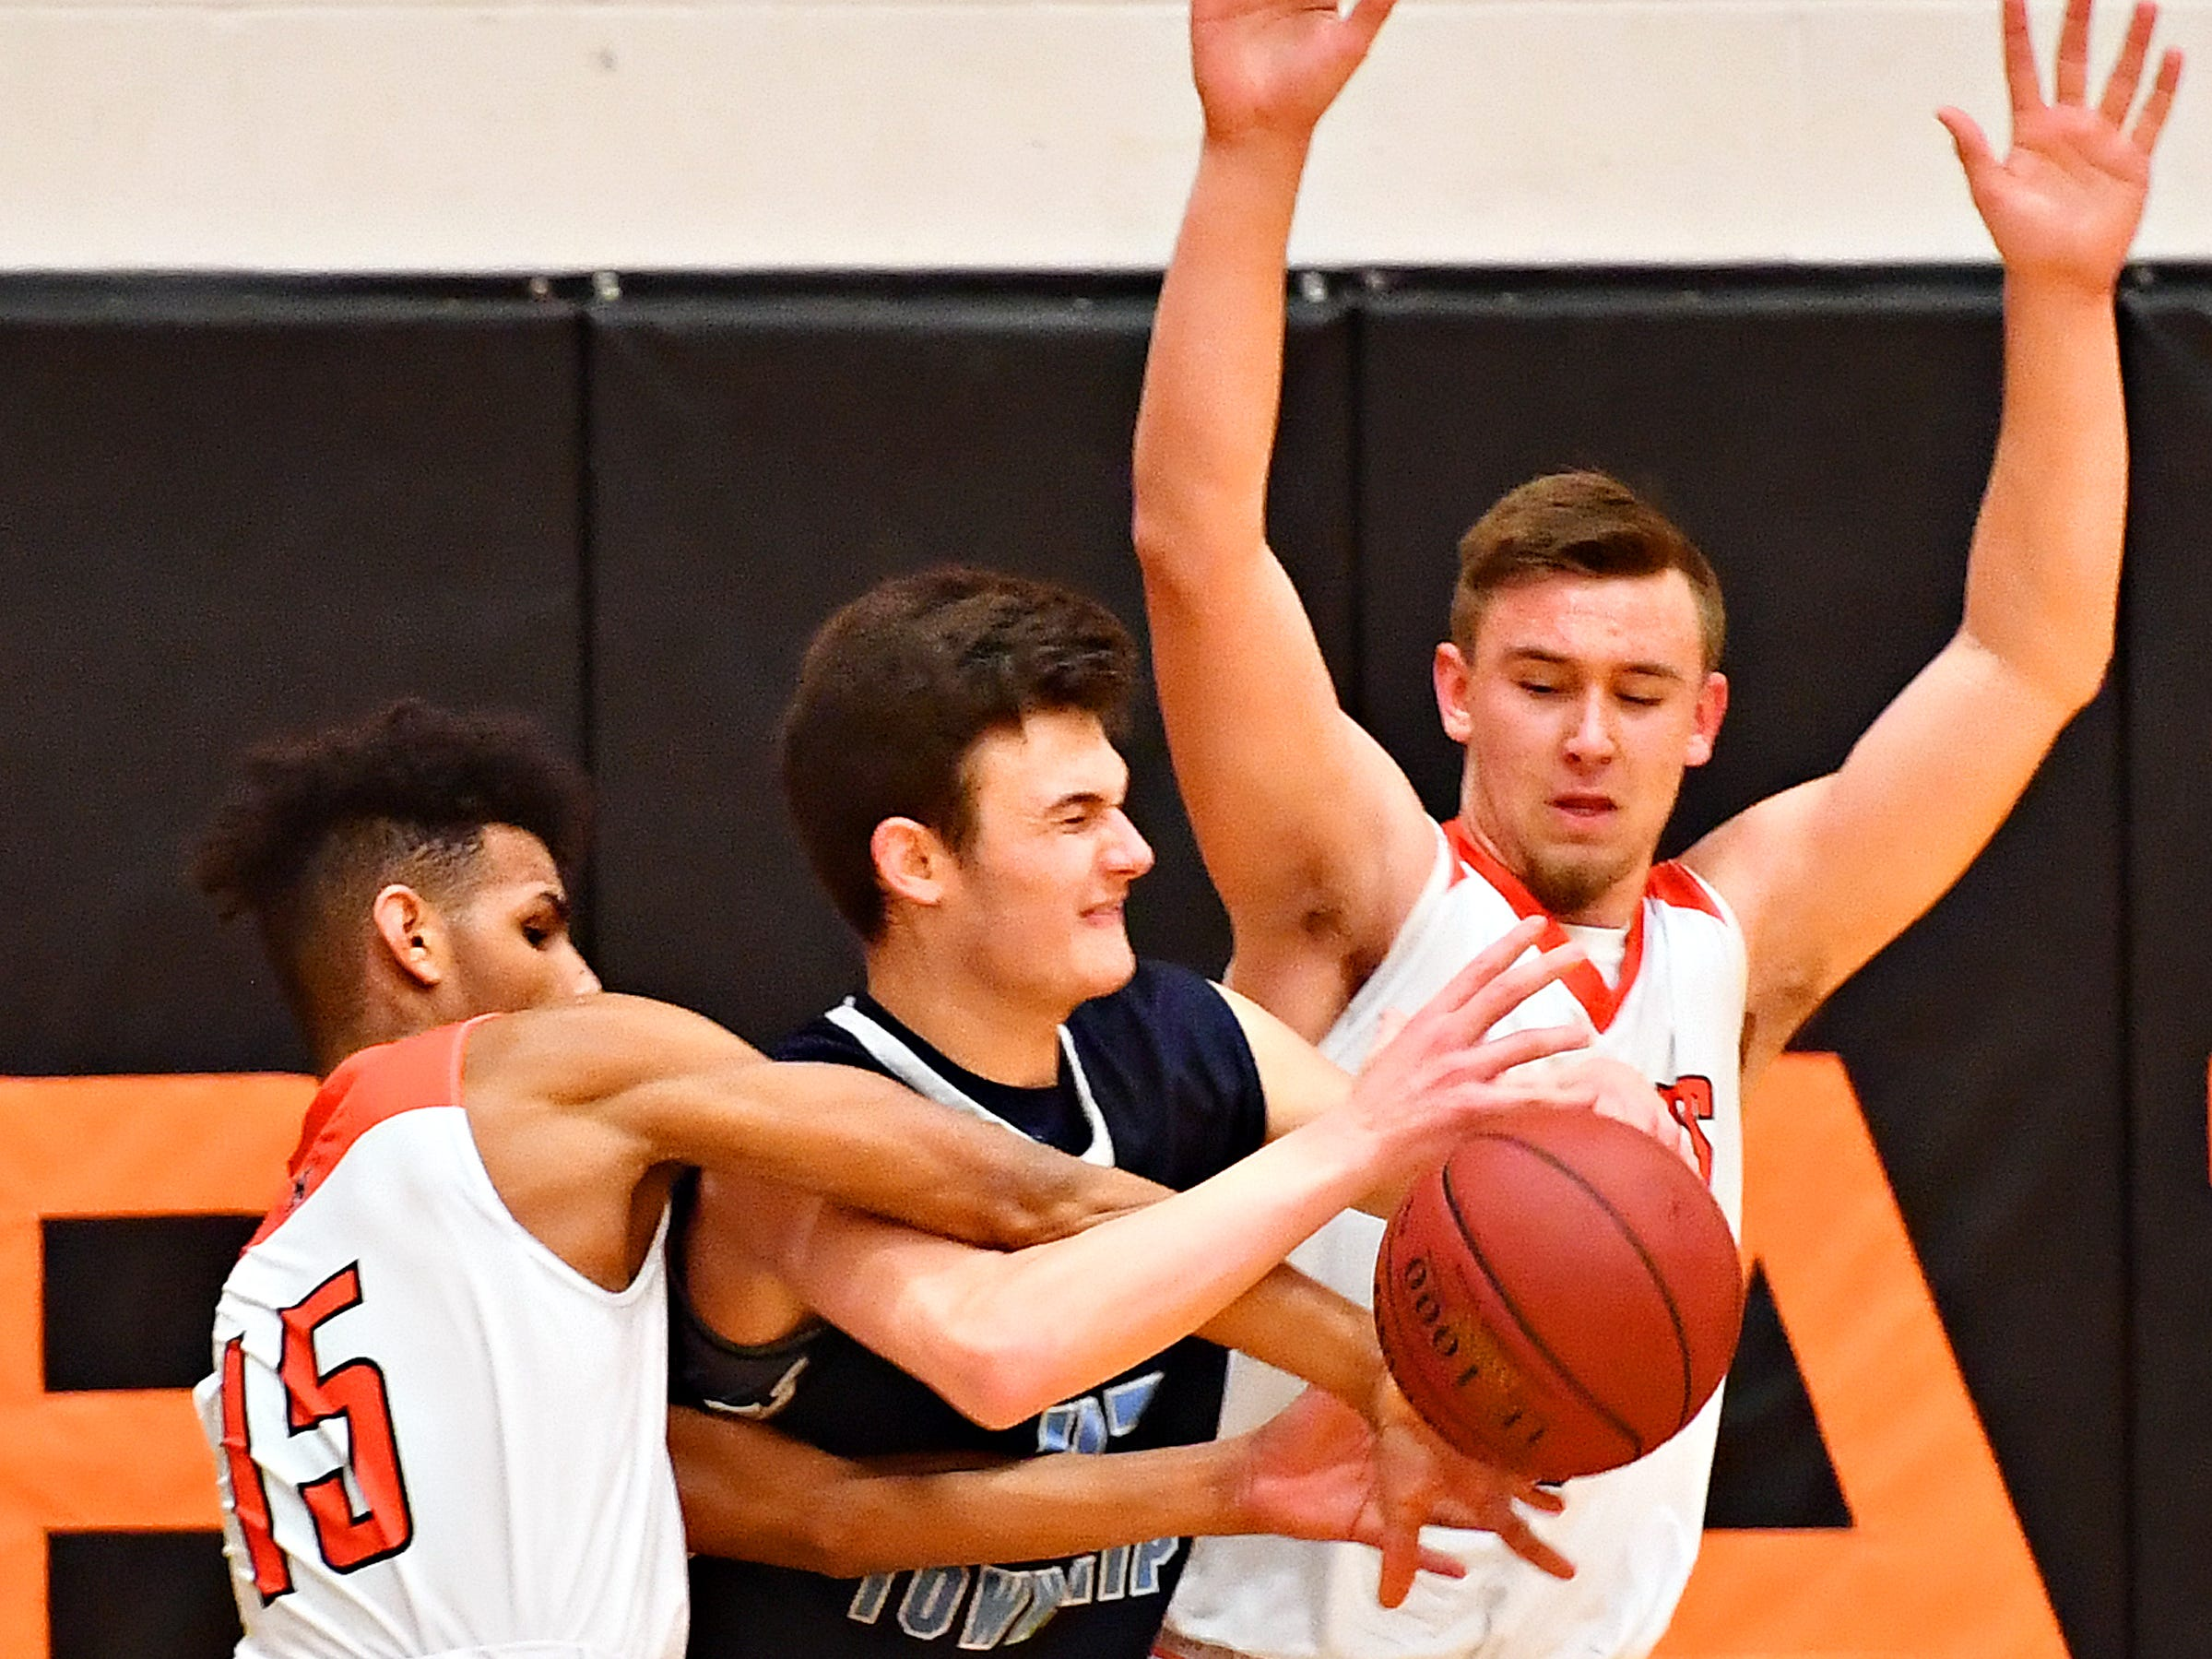 Manheim Township's Tyler Vicidomini, center, can't get past Northeastern's Nick Rizzuto, left, and Zech Sanderson during basketball action at Northeastern Senior High School in Manchester, Wednesday, Jan. 9, 2019. Northeastern would win the game 47-46. Dawn J. Sagert photo